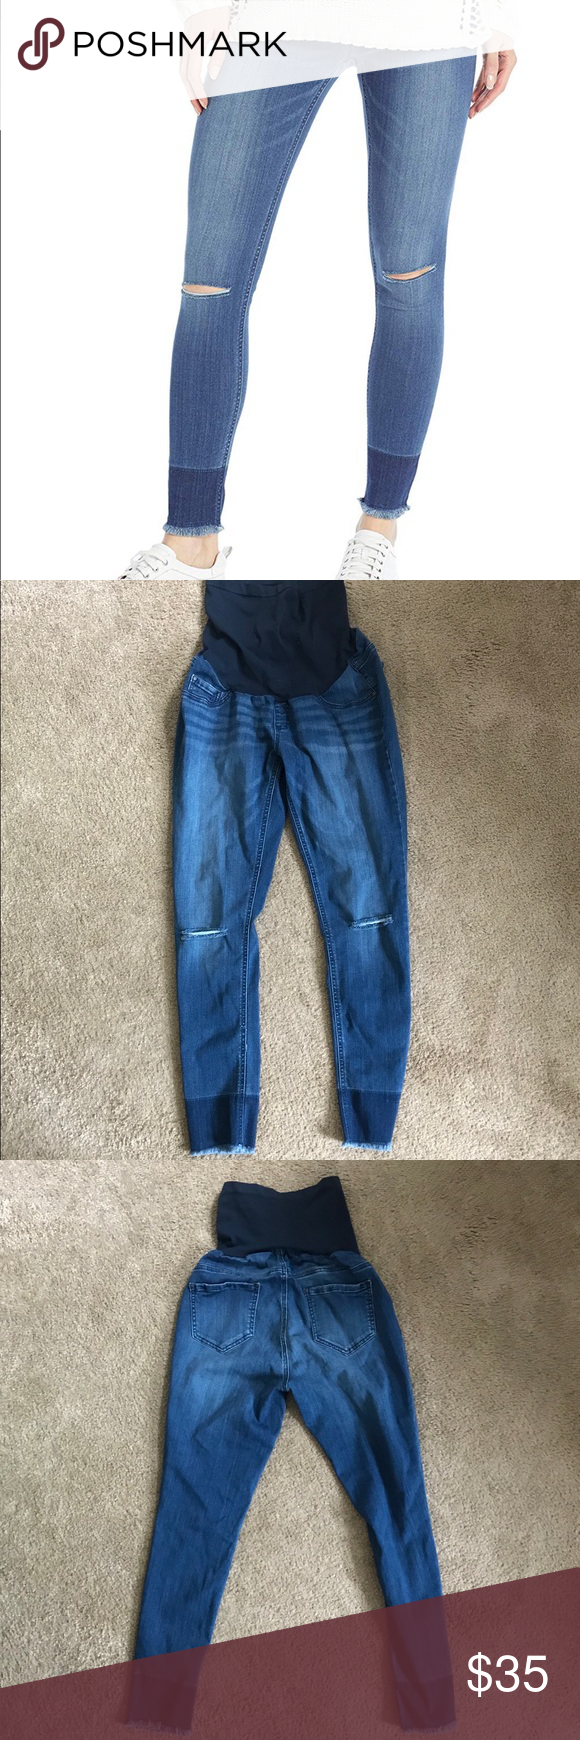 a81de73b358f1 Indigo Blue Maternity Jeans Only wore once. Secret Fit Belly Band. SUPER  soft and stretchy! Skinny ankle jeans. I am a size 10/12 regularly in jeans  and ...